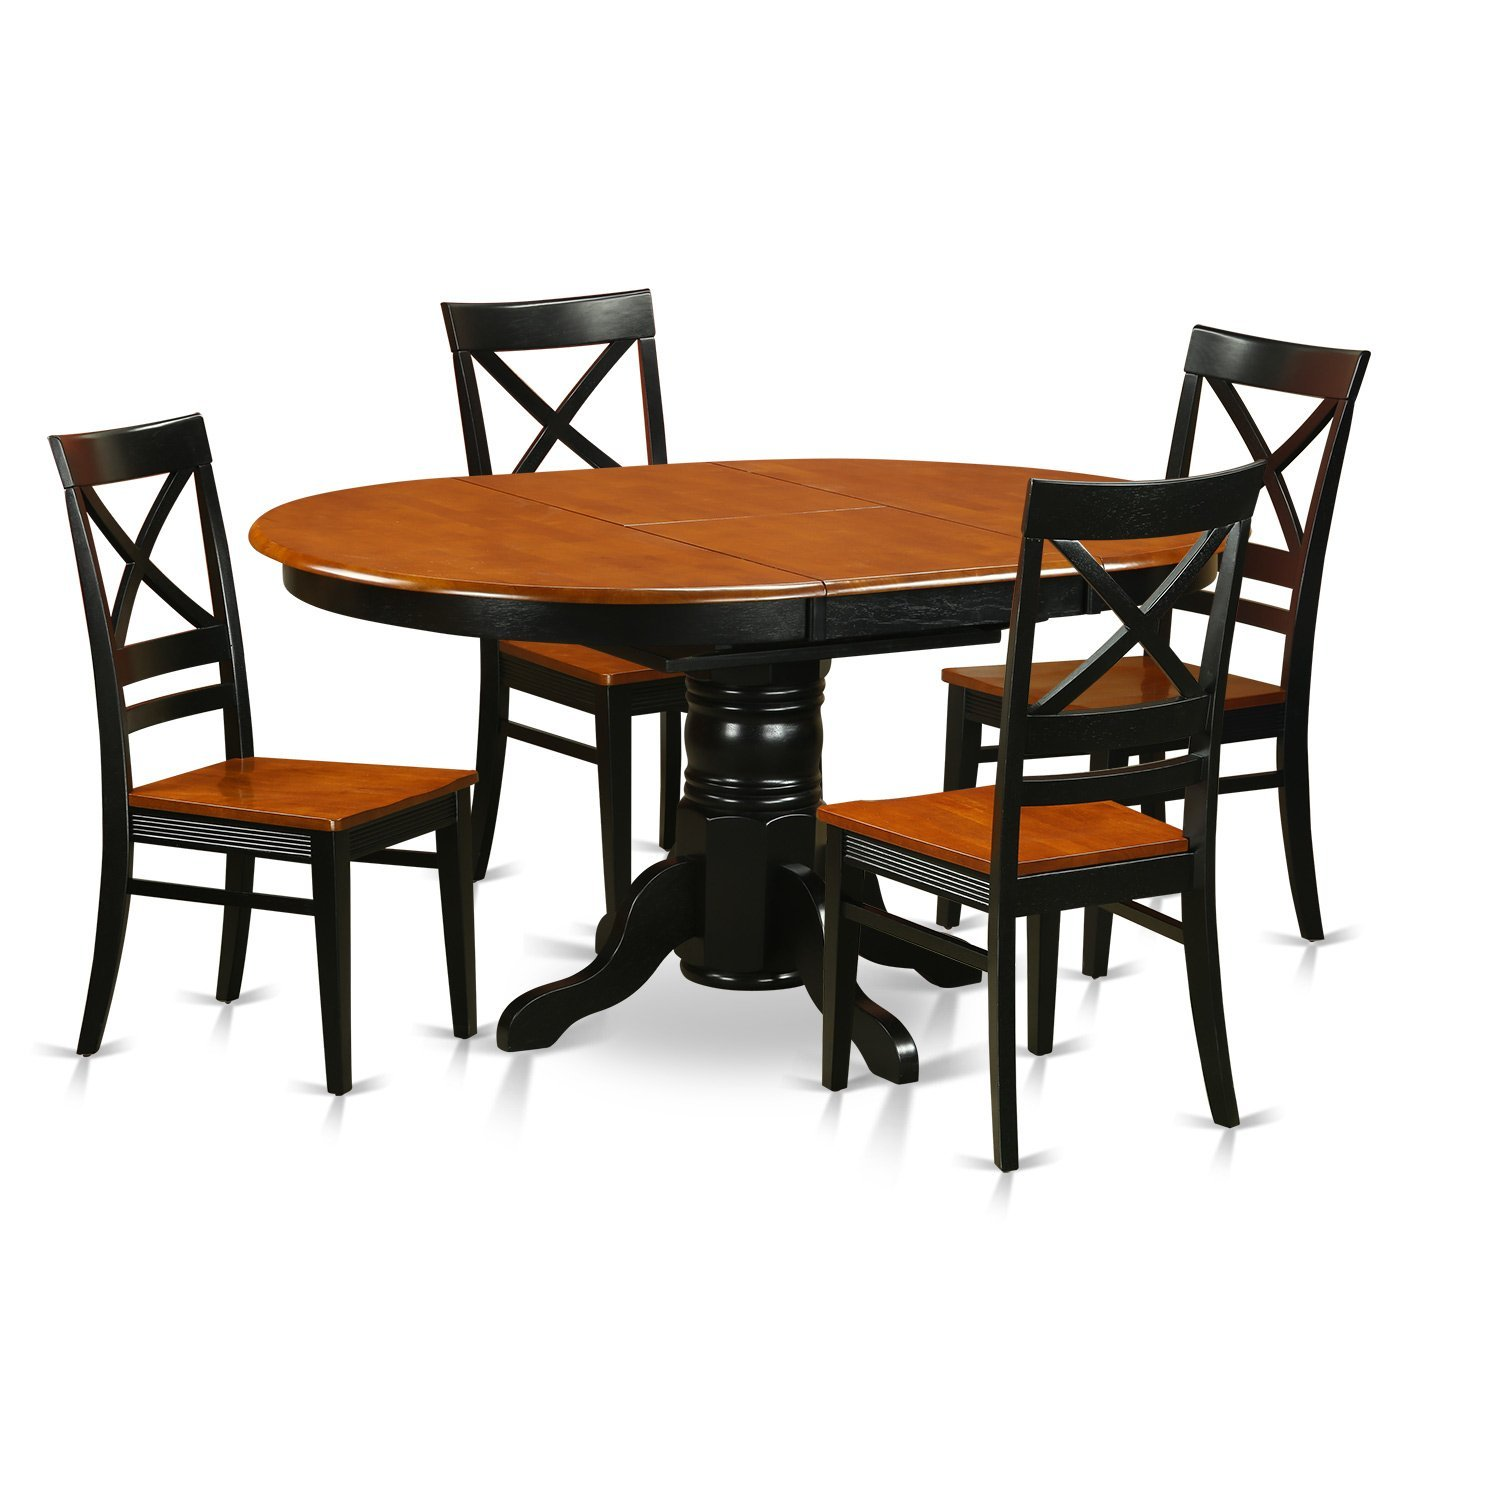 East West Furniture AVQU5-BCH-W 5 Piece with 4 Wood Chairs Avon Dining Set